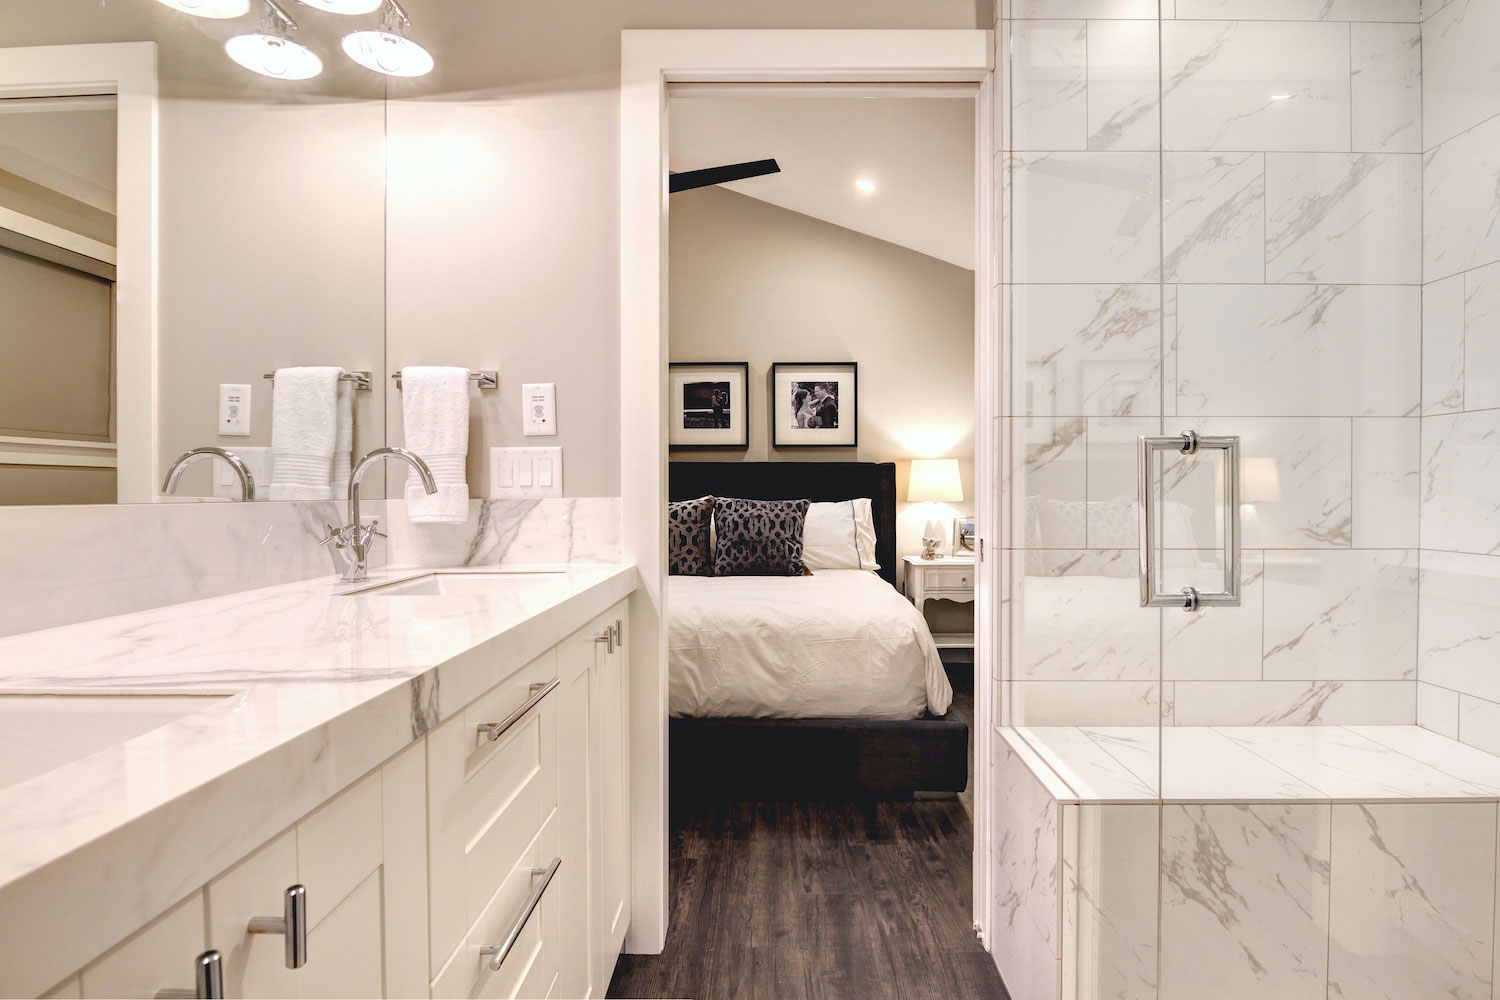 White Granite bathroom remodel by Style Developments in Calgary Alberta